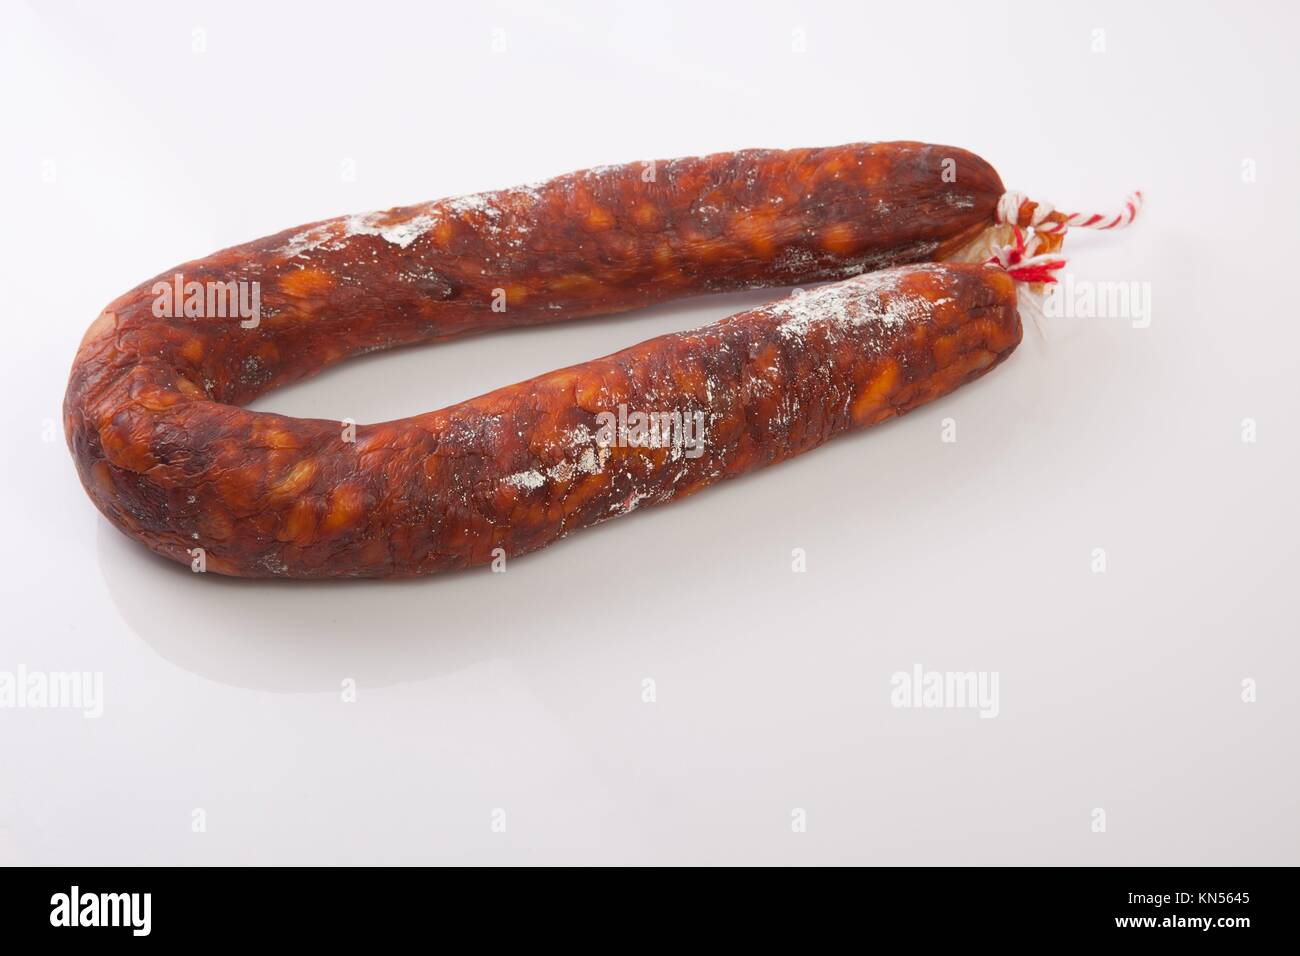 Red spanish chorizo sausage. Isolated over white background. - Stock Image